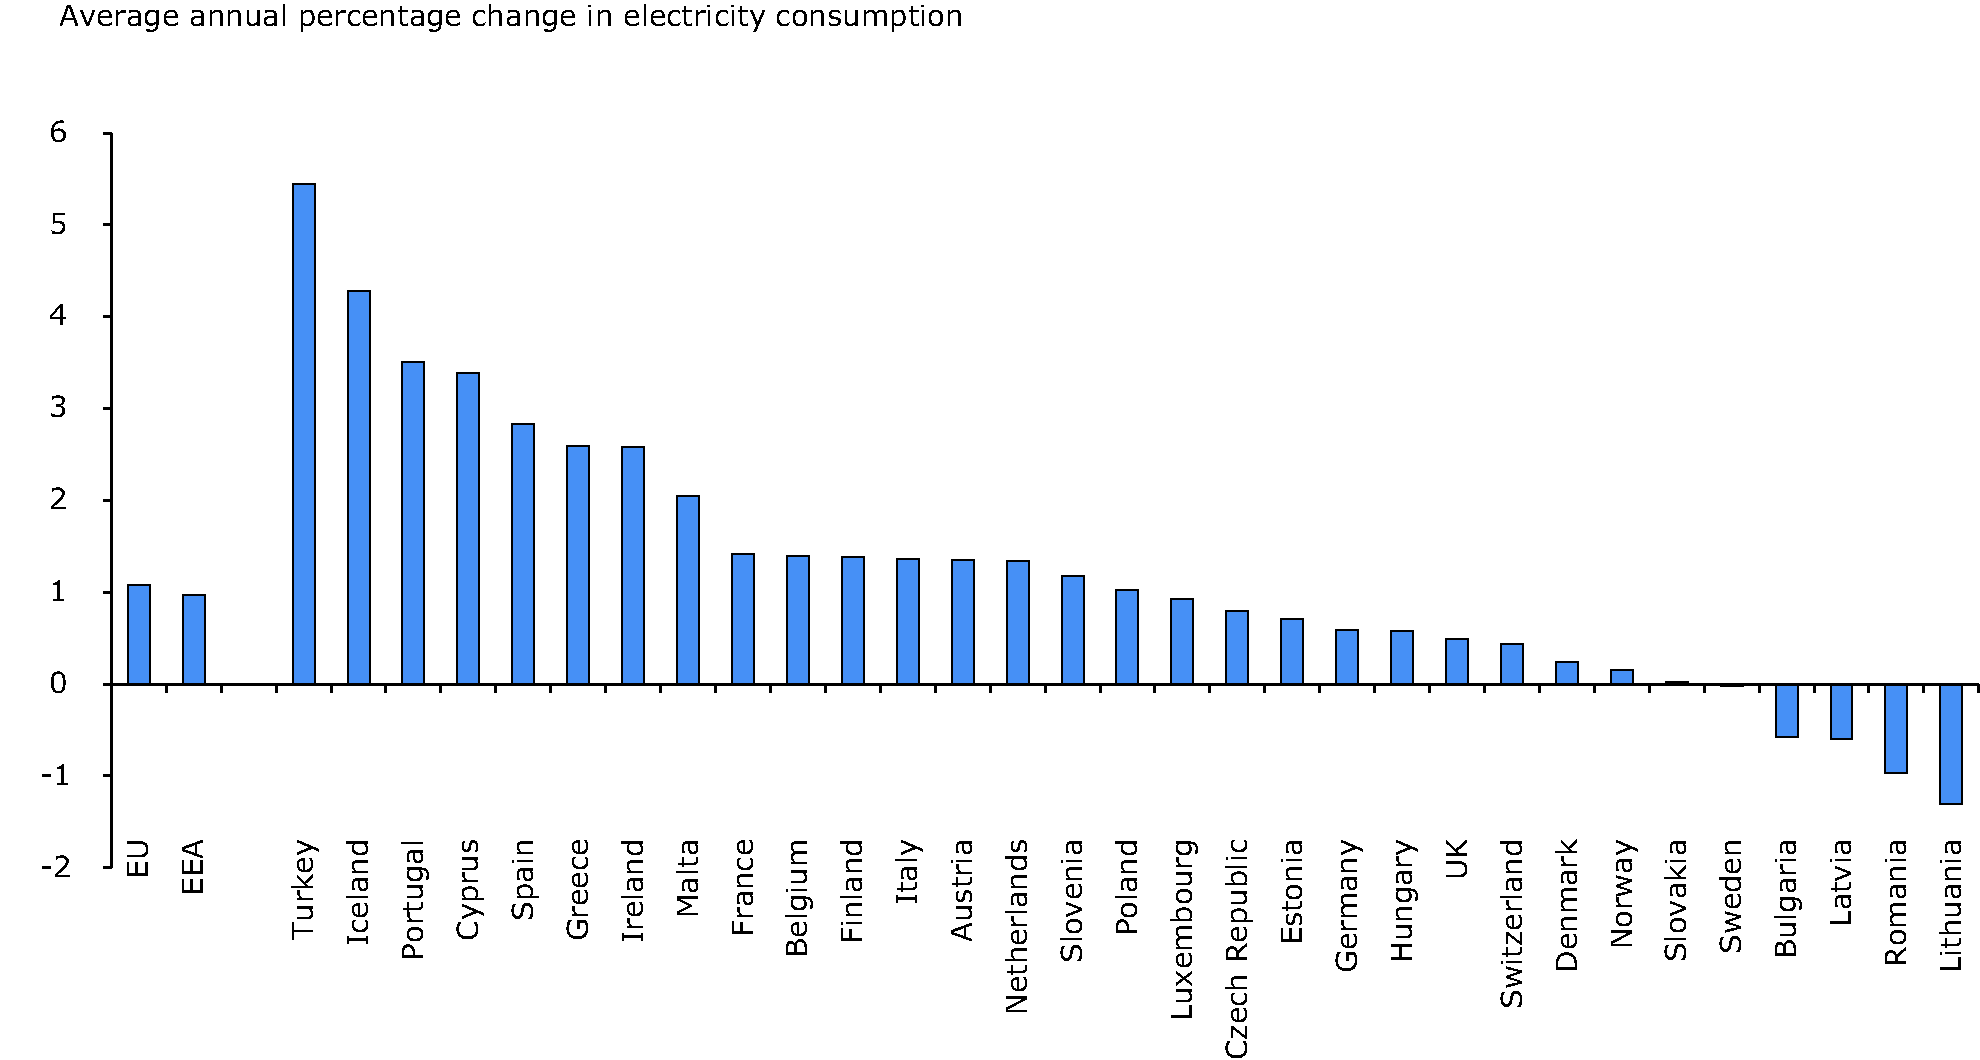 Trends in electricity consumption per capita (1990-2010)